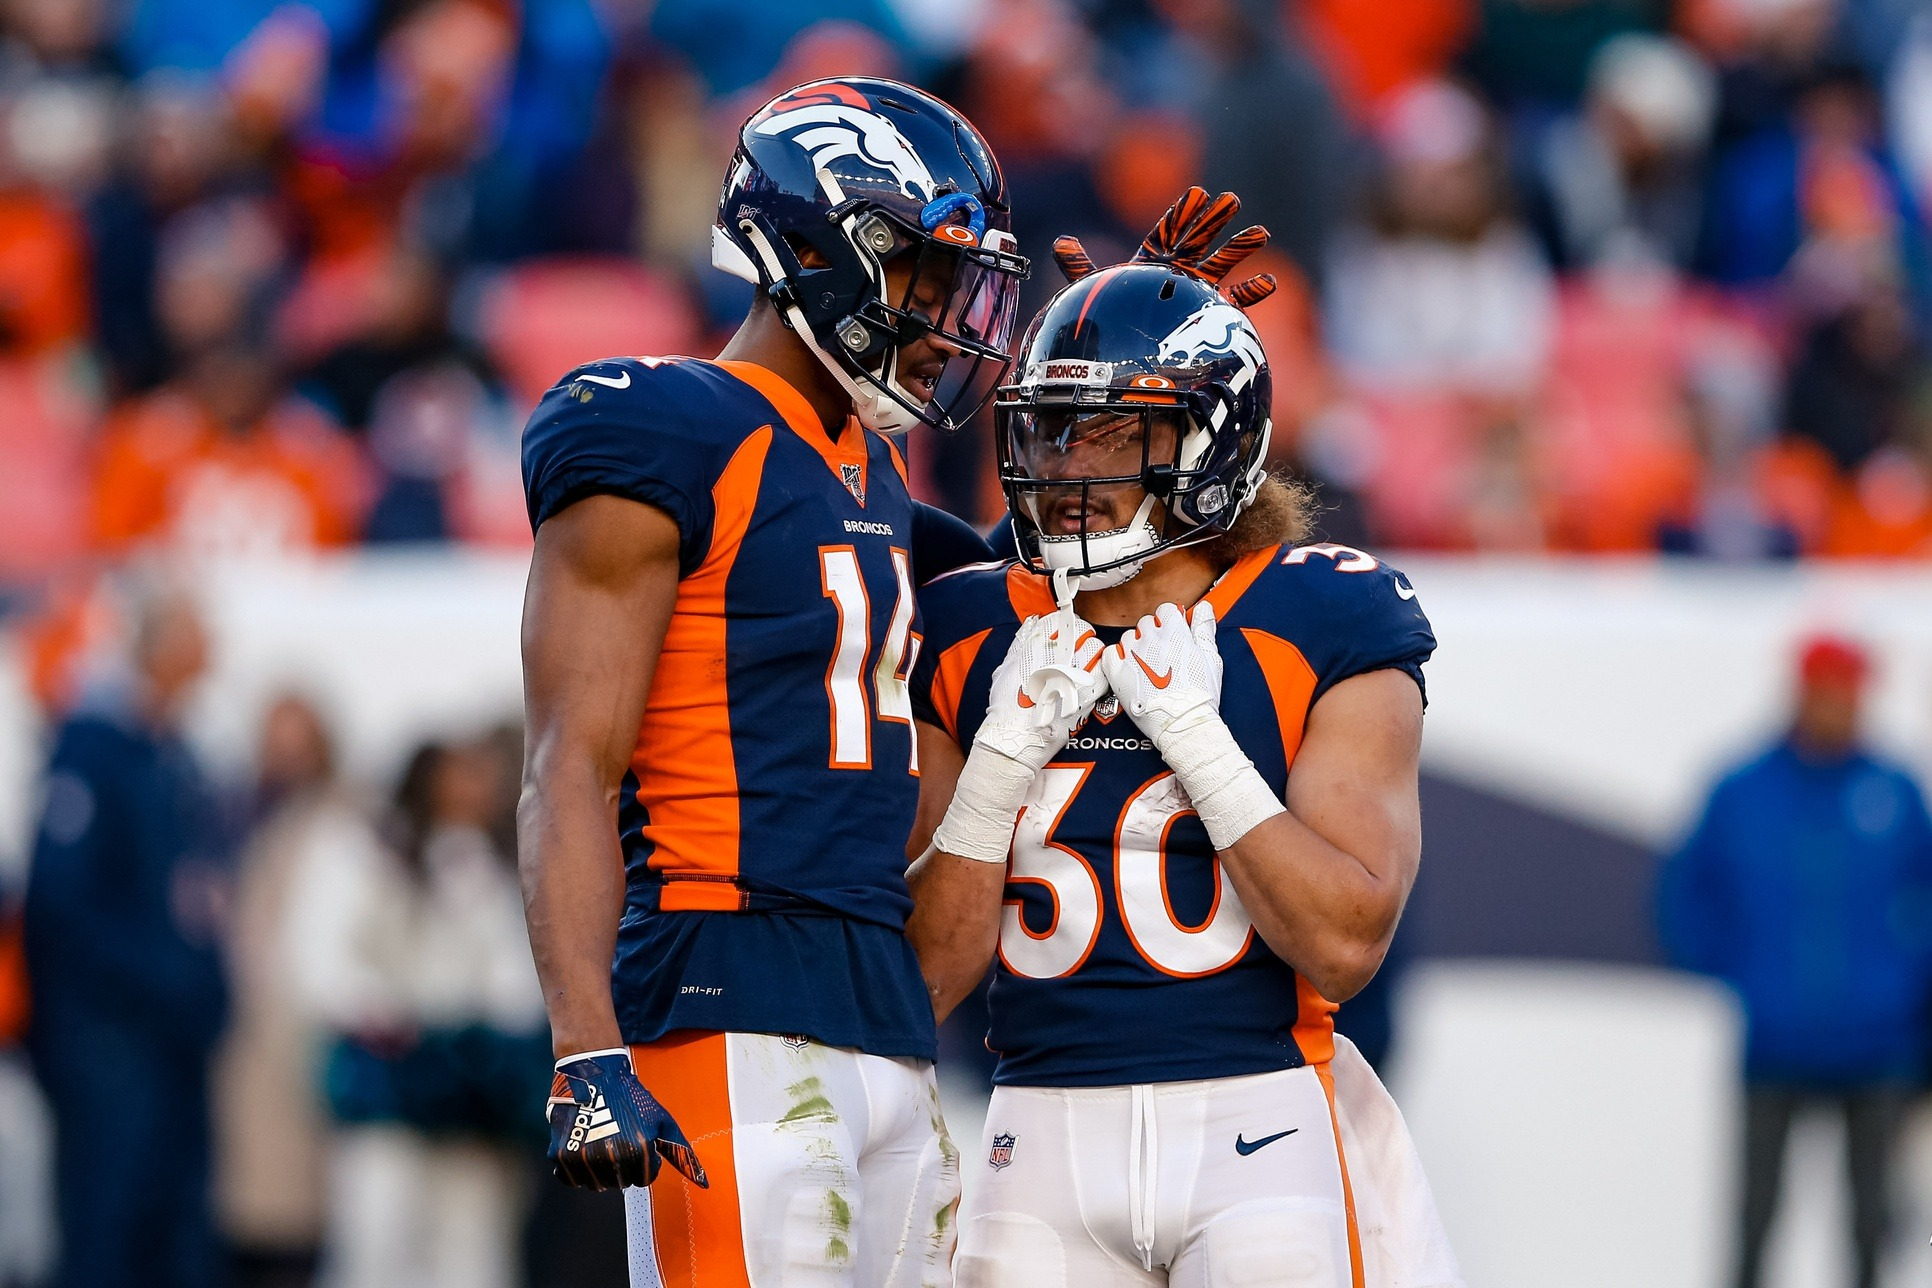 Did the Broncos' sophomore class live up to expectations?